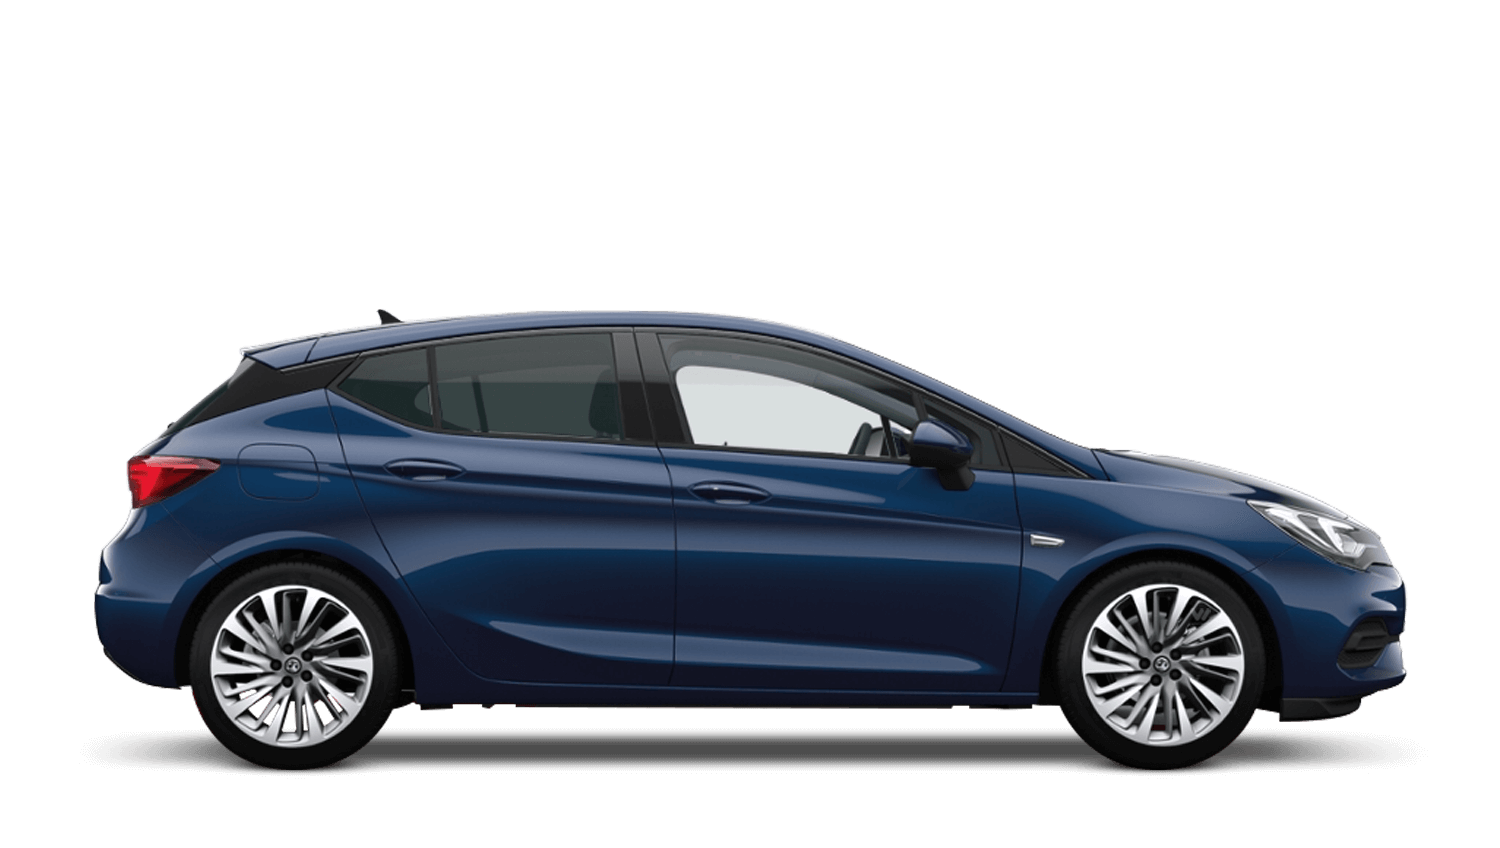 Navy Blue (Metallic) Vauxhall Astra